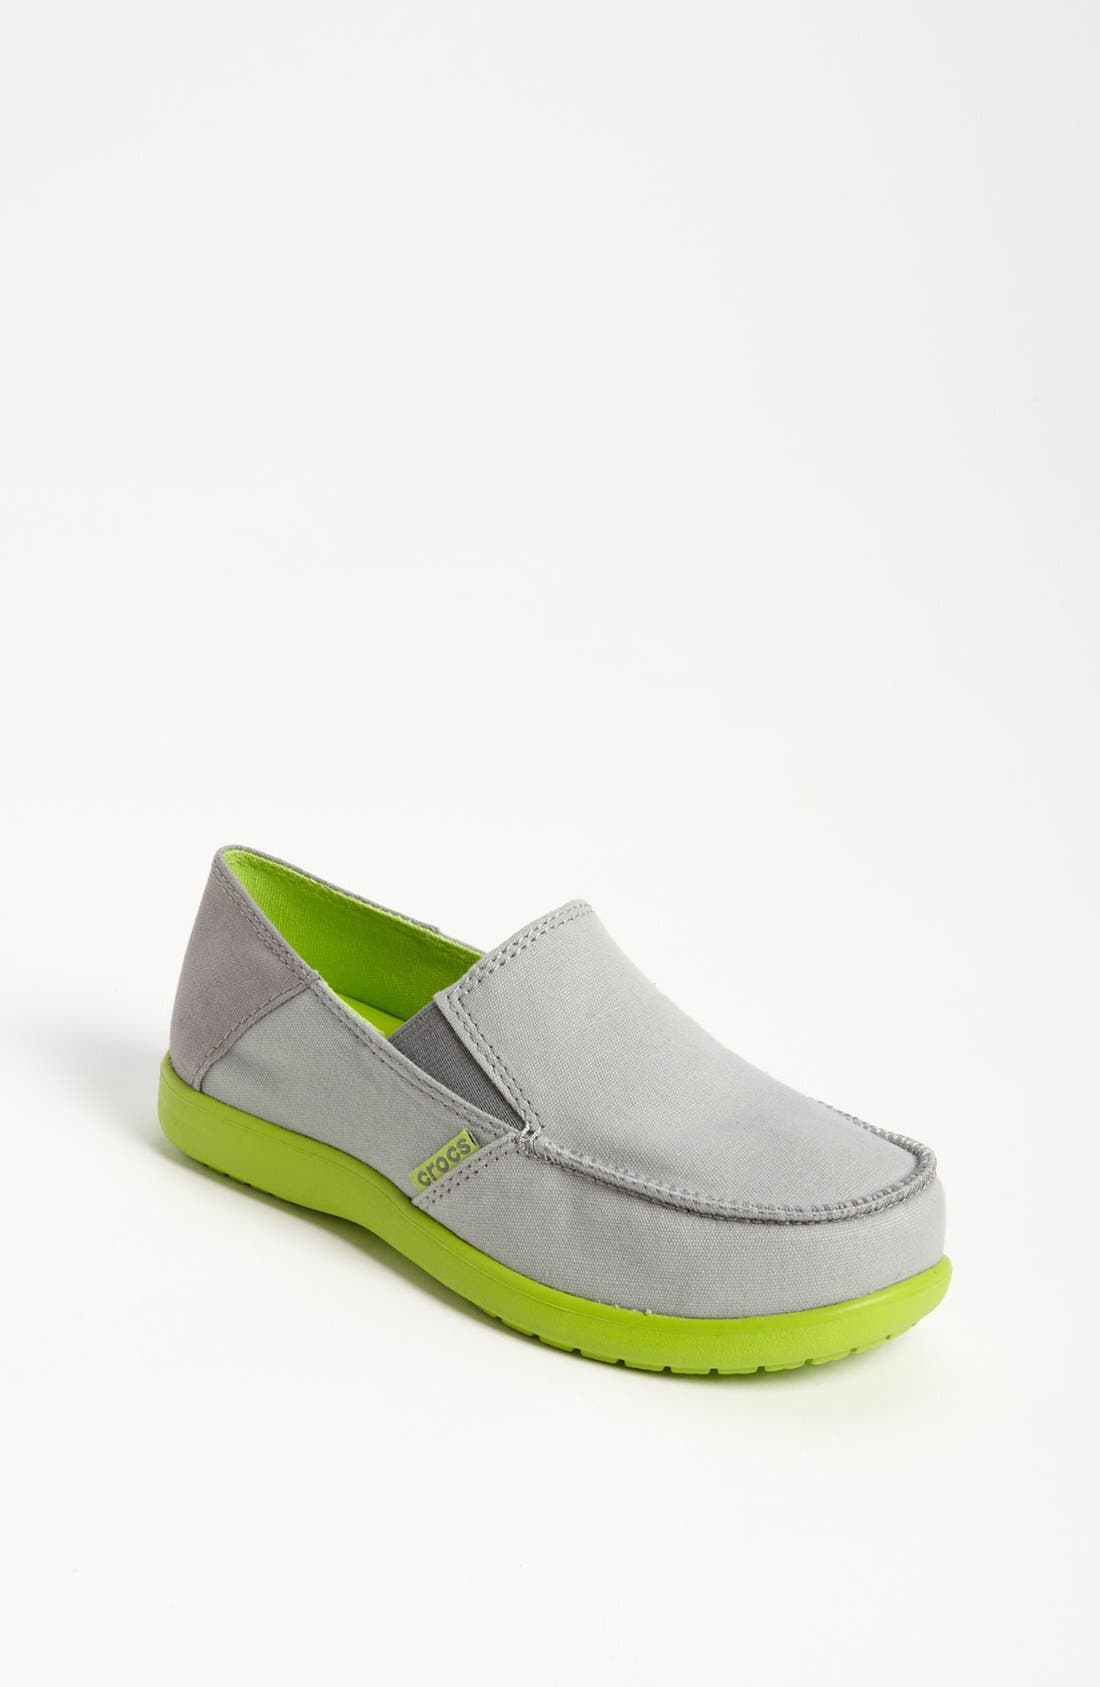 Alternate Image 1 Selected - CROCS™ 'Santa Cruz' Loafer (Little Kid & Big Kid)